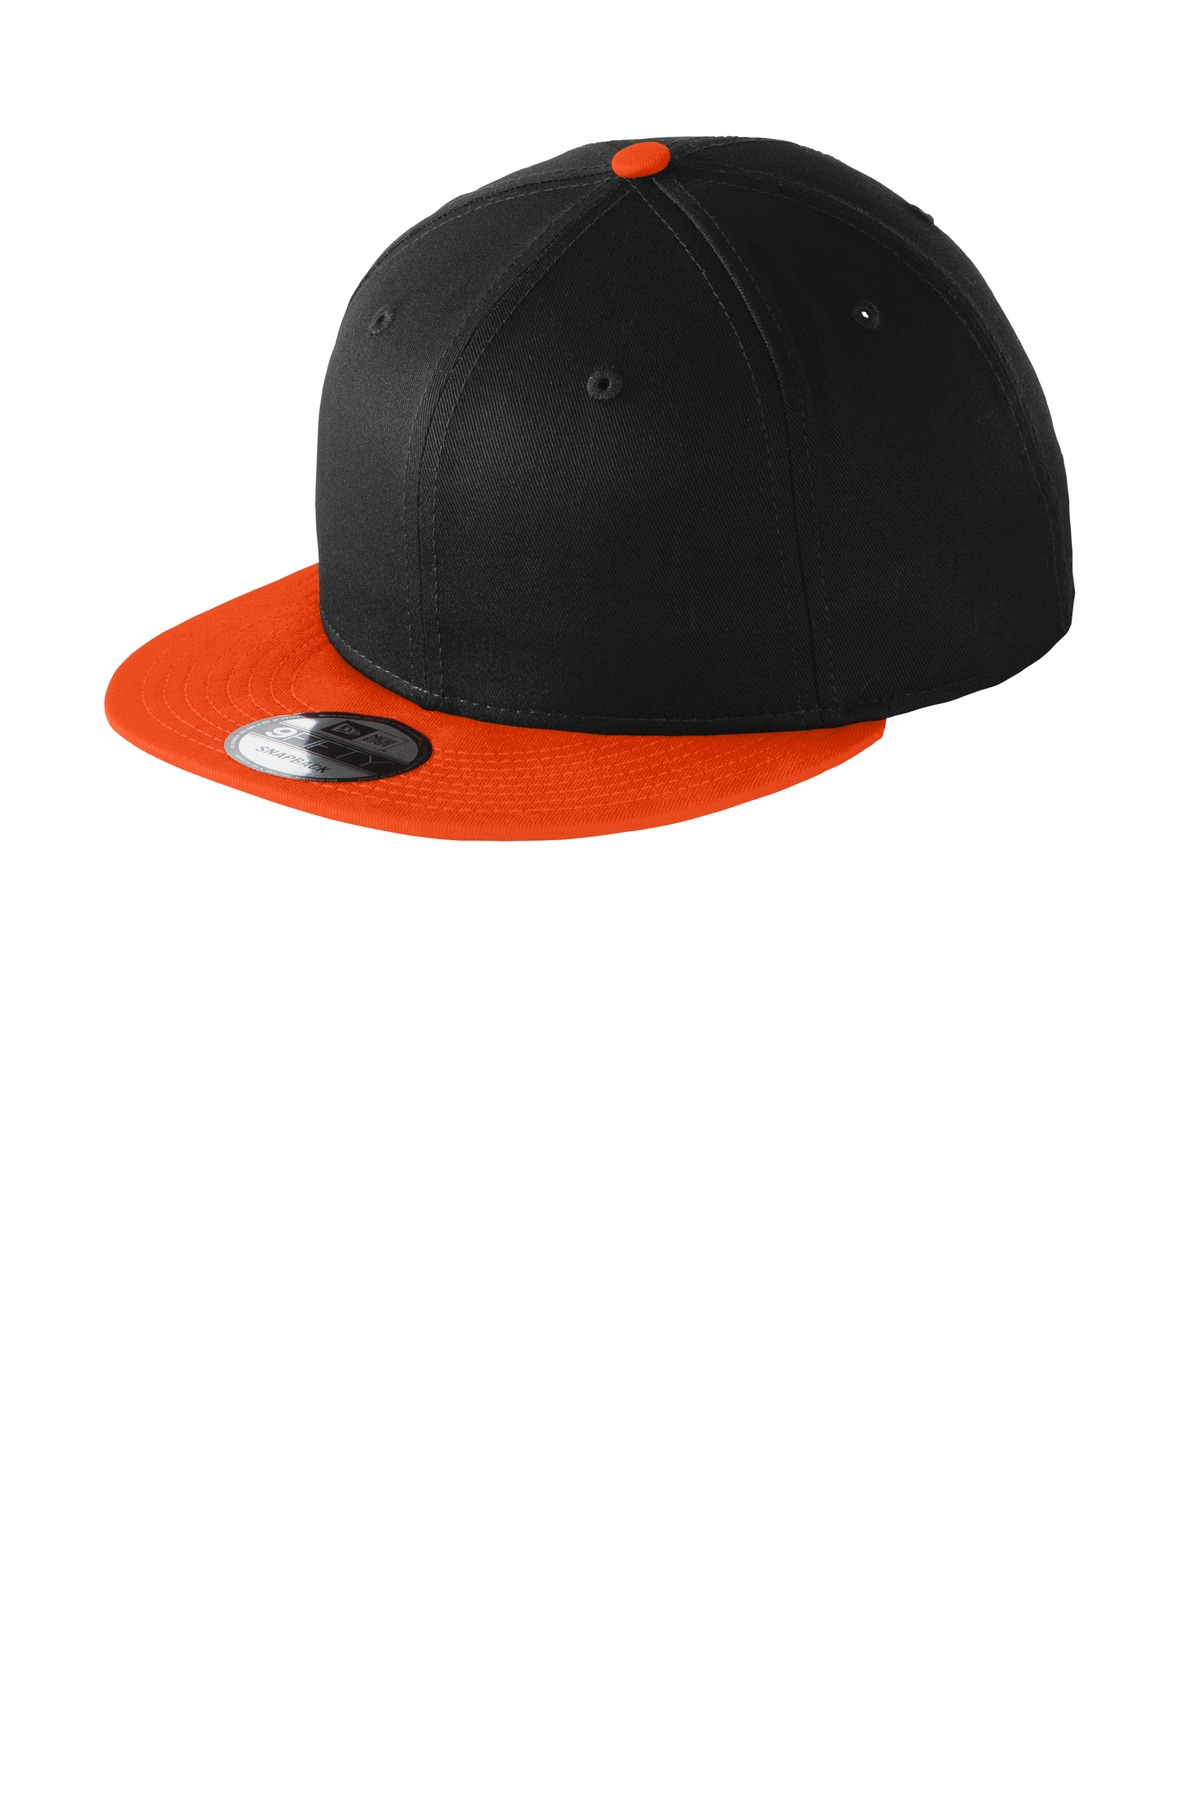 New Era ®  - Flat Bill Snapback Cap. NE400 - Black/ Team Orange